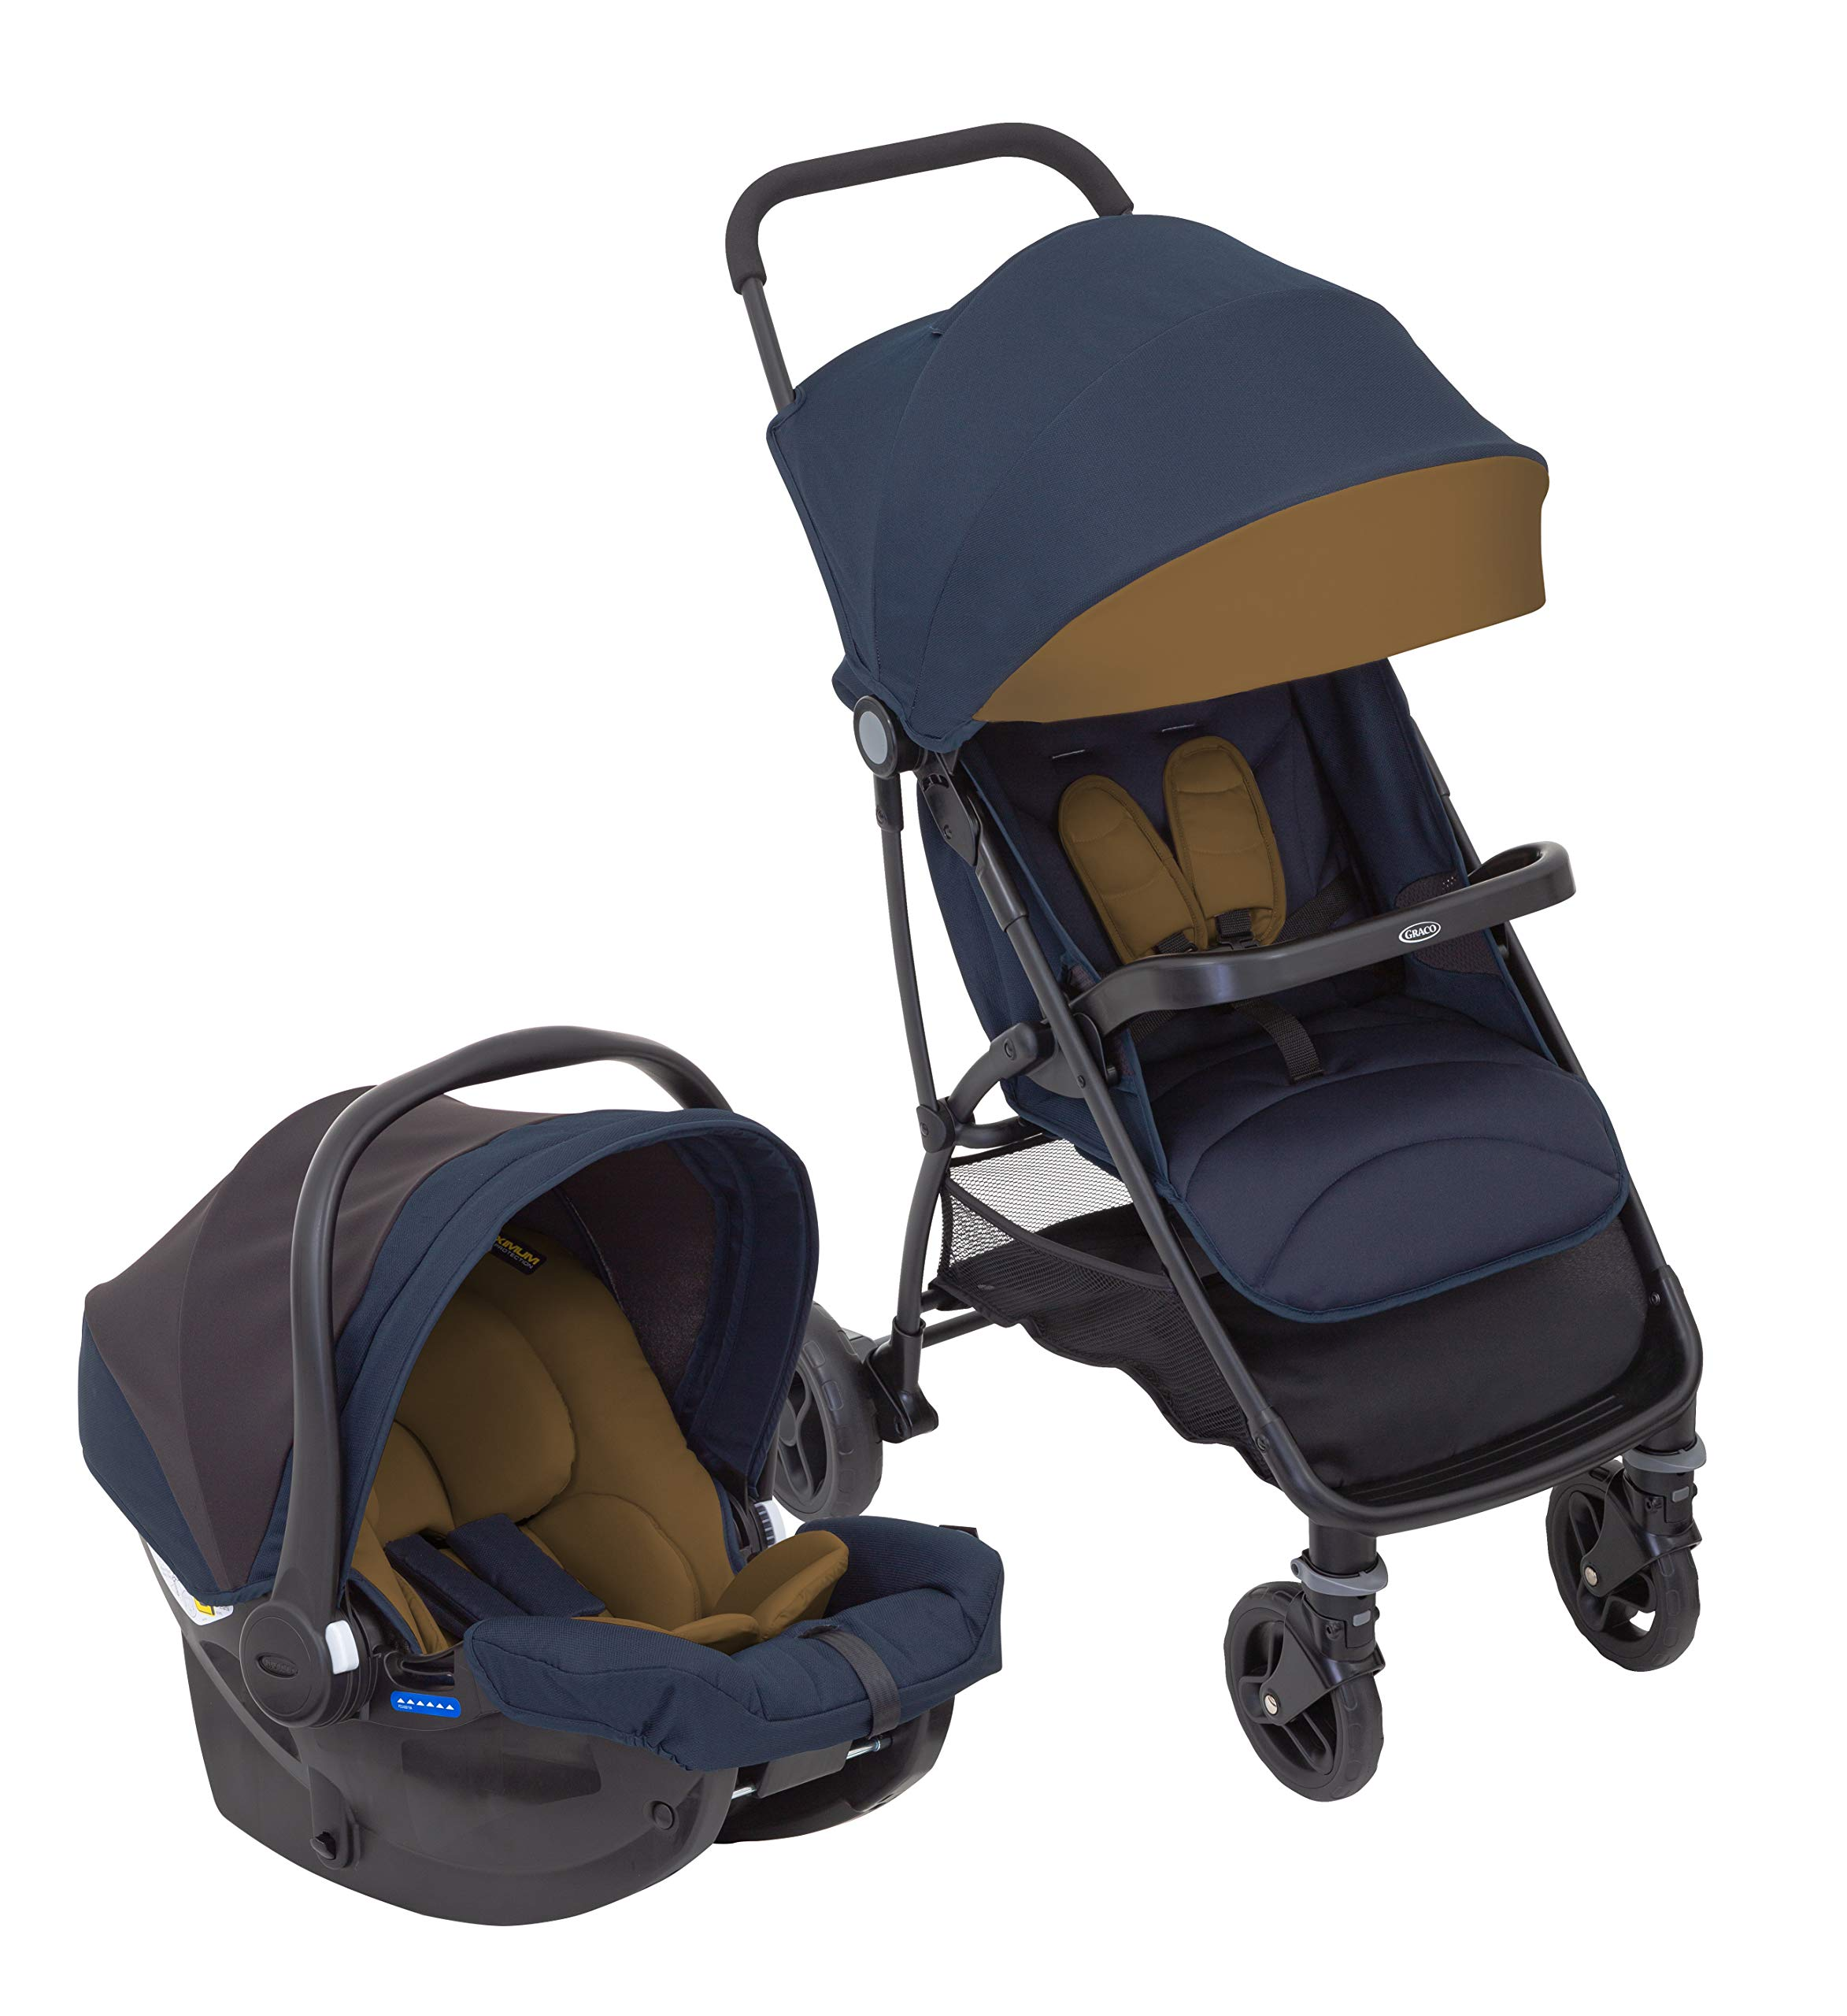 Graco Breaze Lite i-Size Travel System, Eclipse Graco From birth to 3 years approx. (0-15kg) Travel system package with snug essentials isize infant car seat included Lightweight stroller at only 6.5kg 1